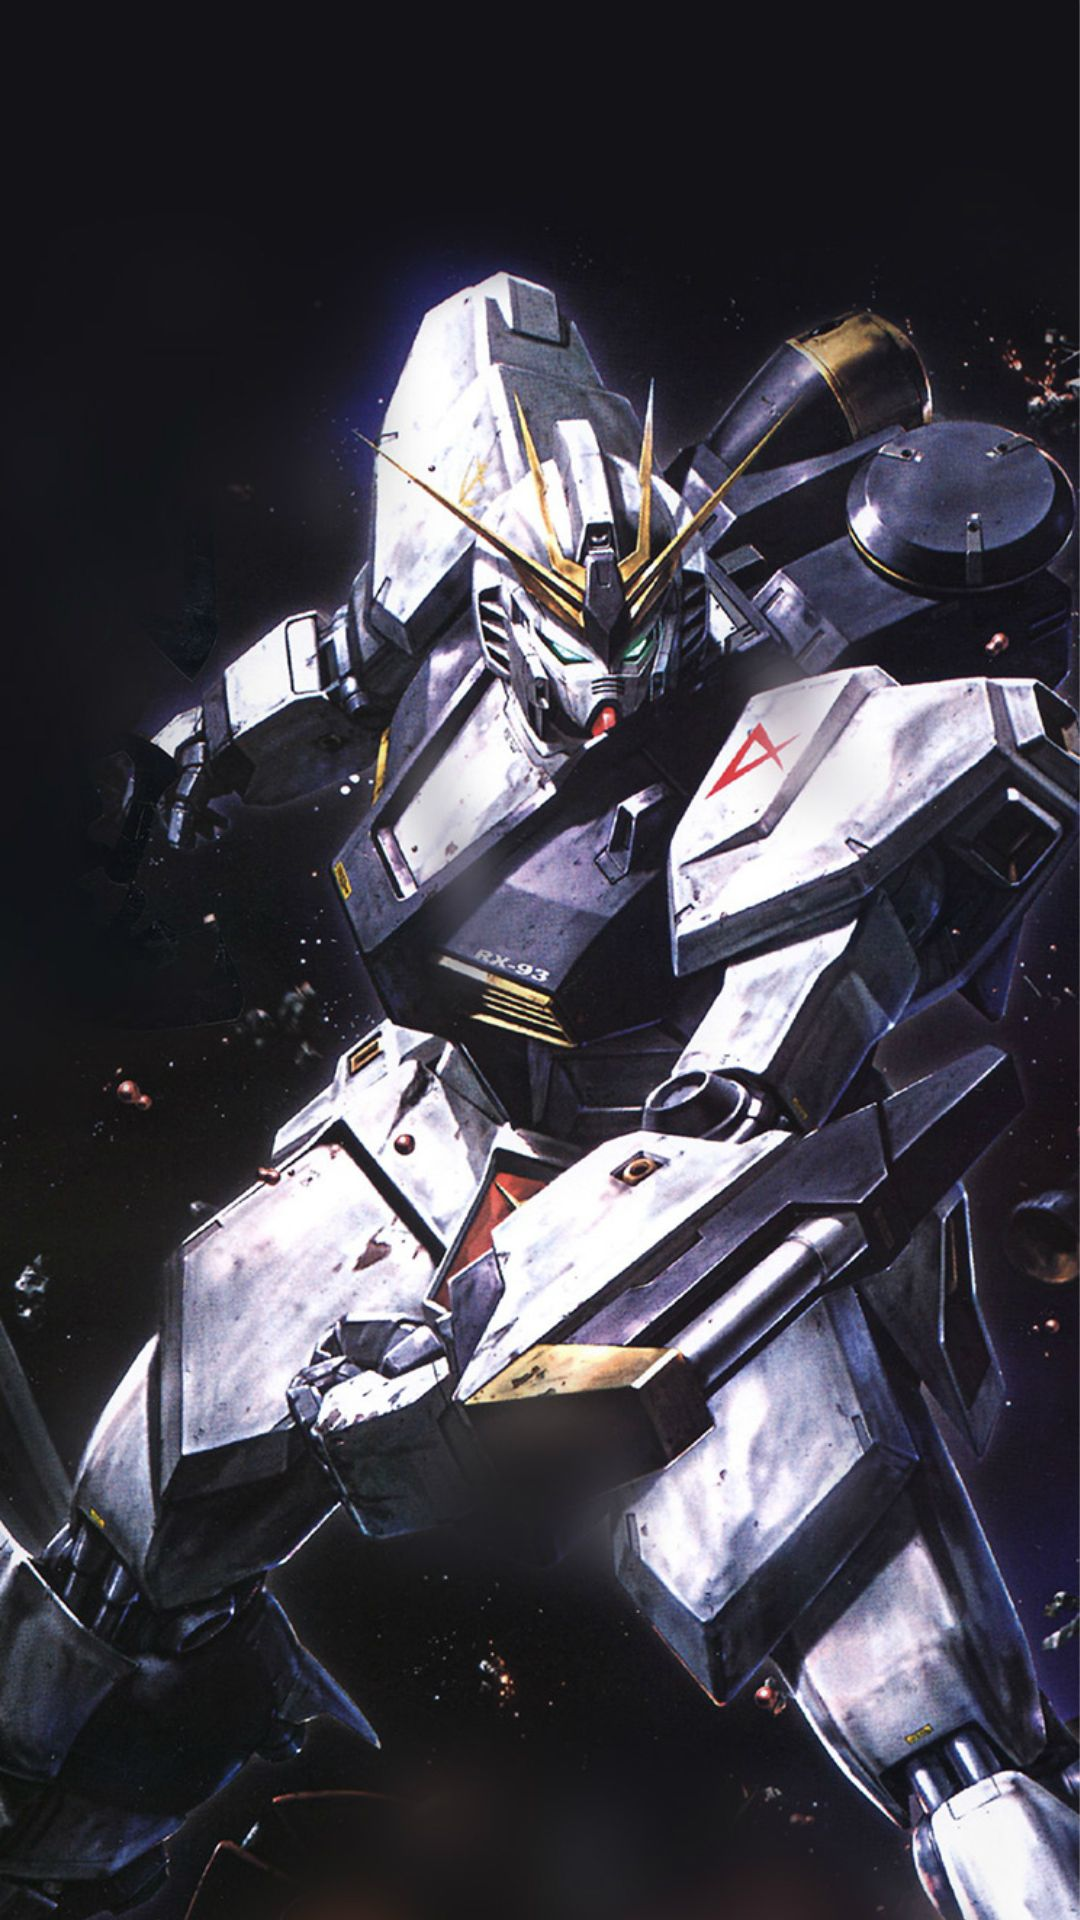 Gundam Rx Illust Toy Space Iphone 6 Wallpaper Download Iphone Wallpapers Ipad Wallpapers One Stop Download Gundam Art Gundam Wallpapers Space Art